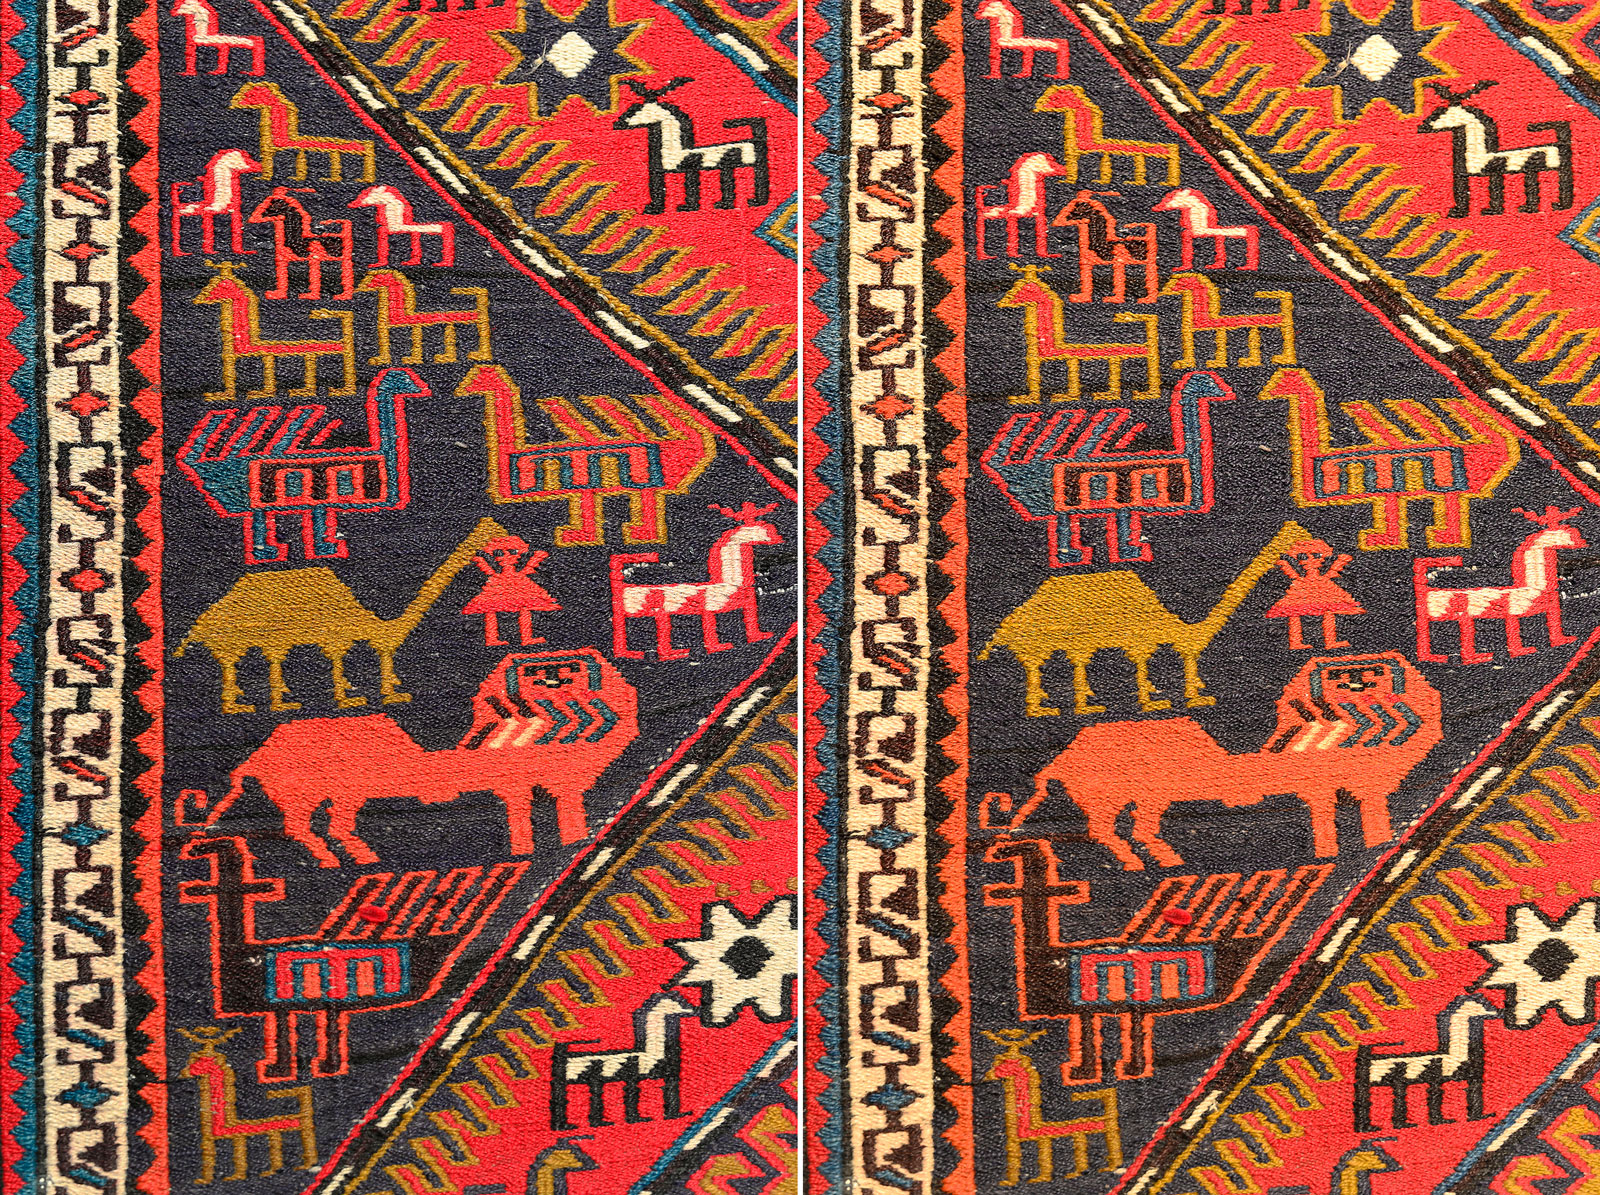 Compare how this filter recover colors in the image of this ancient red Persian carpet which under artificial light. Left image captured with filter and the right one without it.